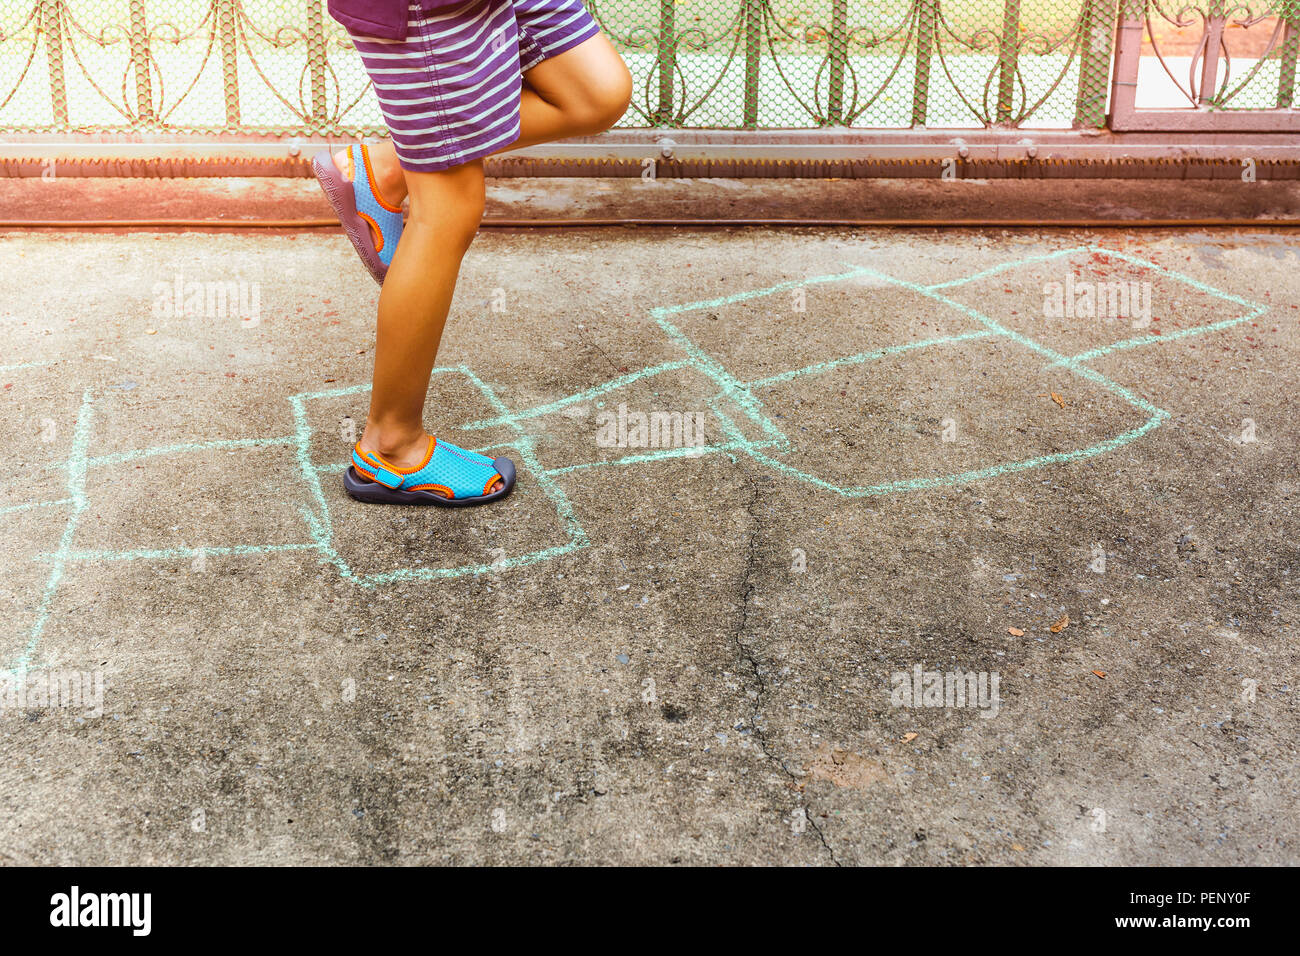 Child playing hopscotch game on concrete floor outdoors in summer. - Stock Image